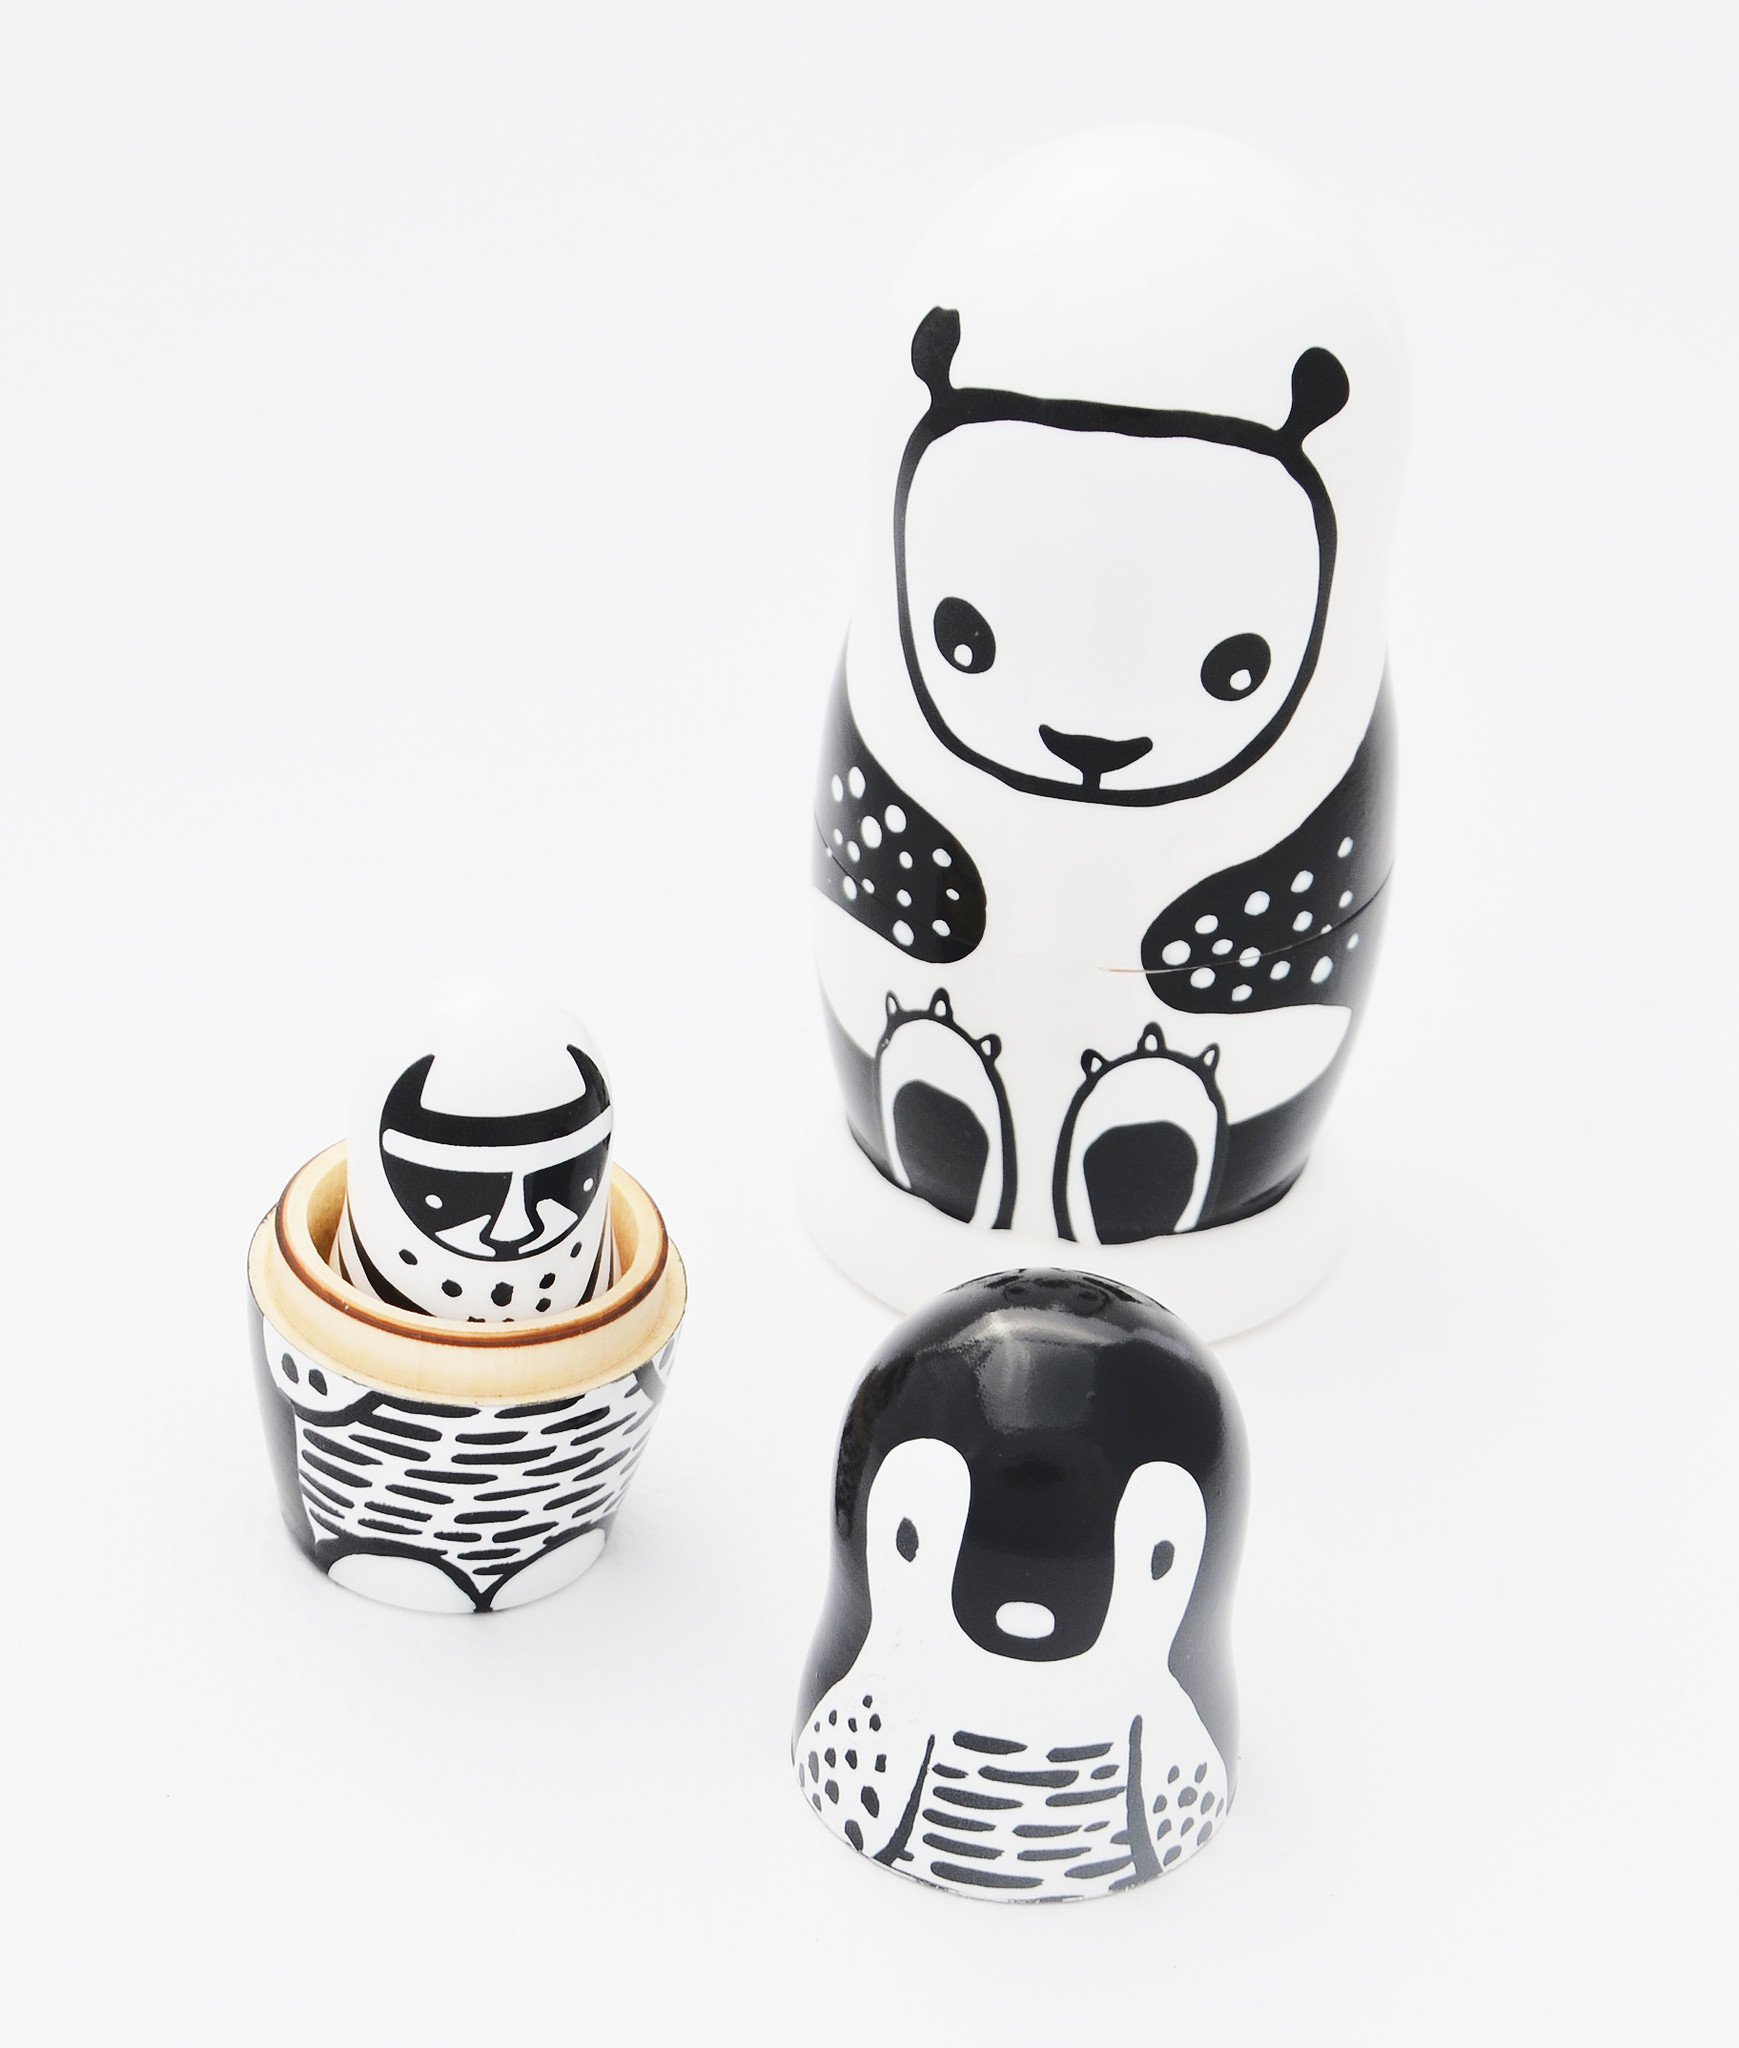 Wee Gallery Set of 3 Nesting Dolls, Handmade Stacking Russian Dolls - Black and White Animals